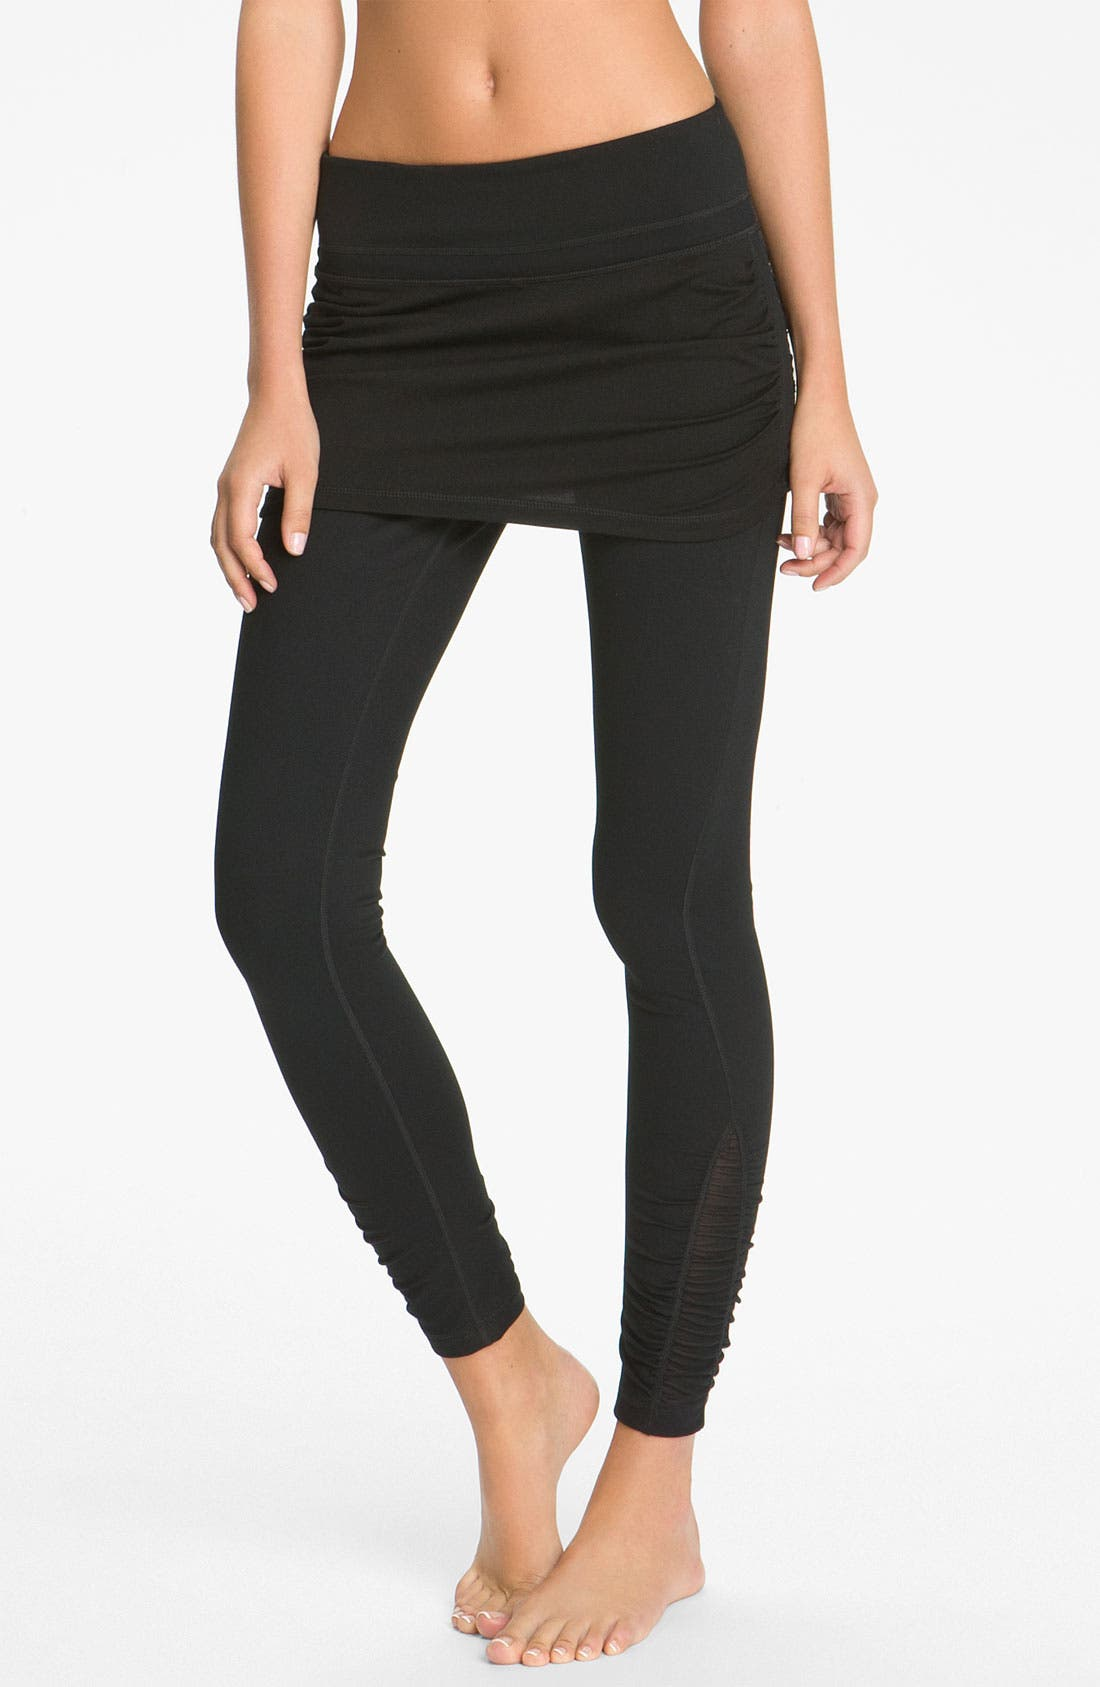 Alternate Image 1 Selected - Zella 'Work It' Skirted Leggings